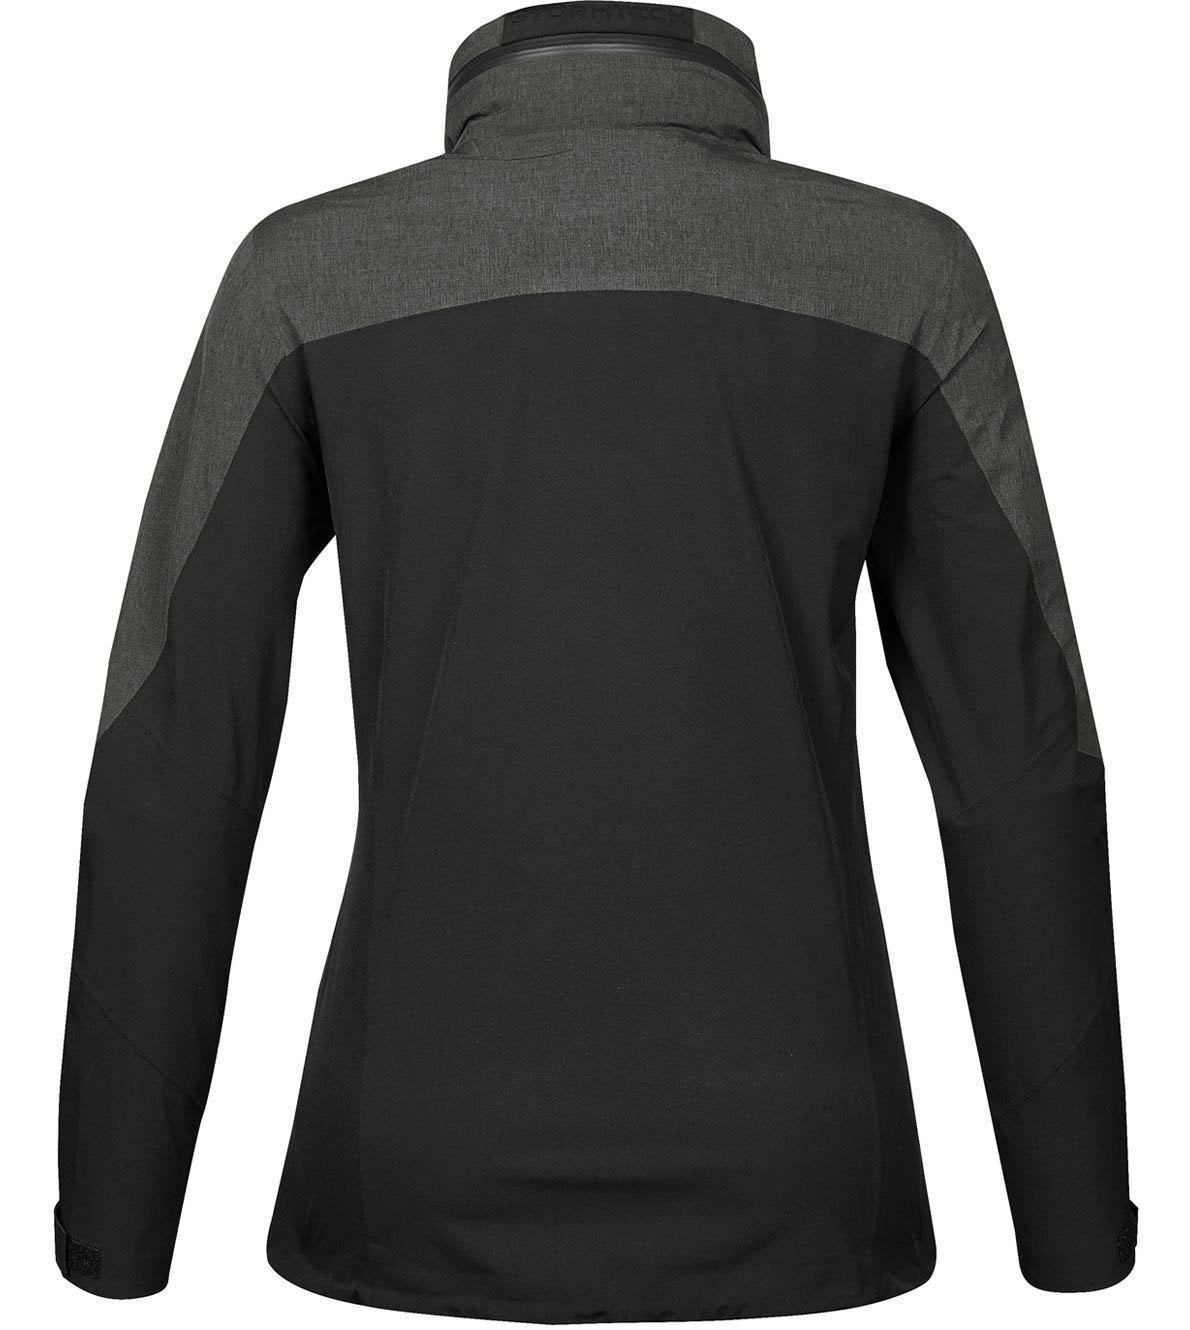 Black/Carbon Heather - Back